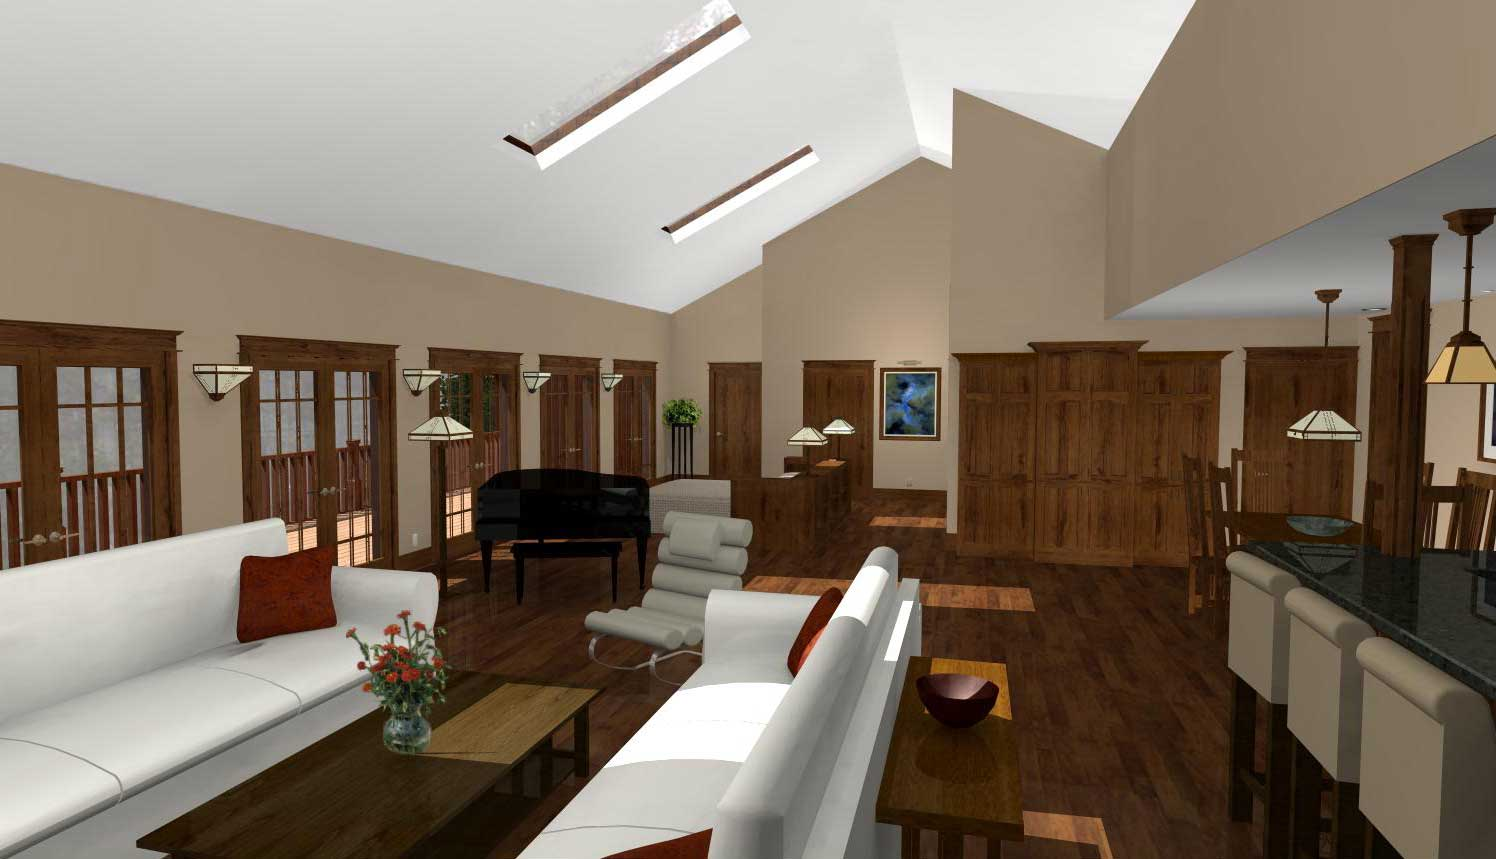 3D Rendering of Main Living Area by CastleView3D.com